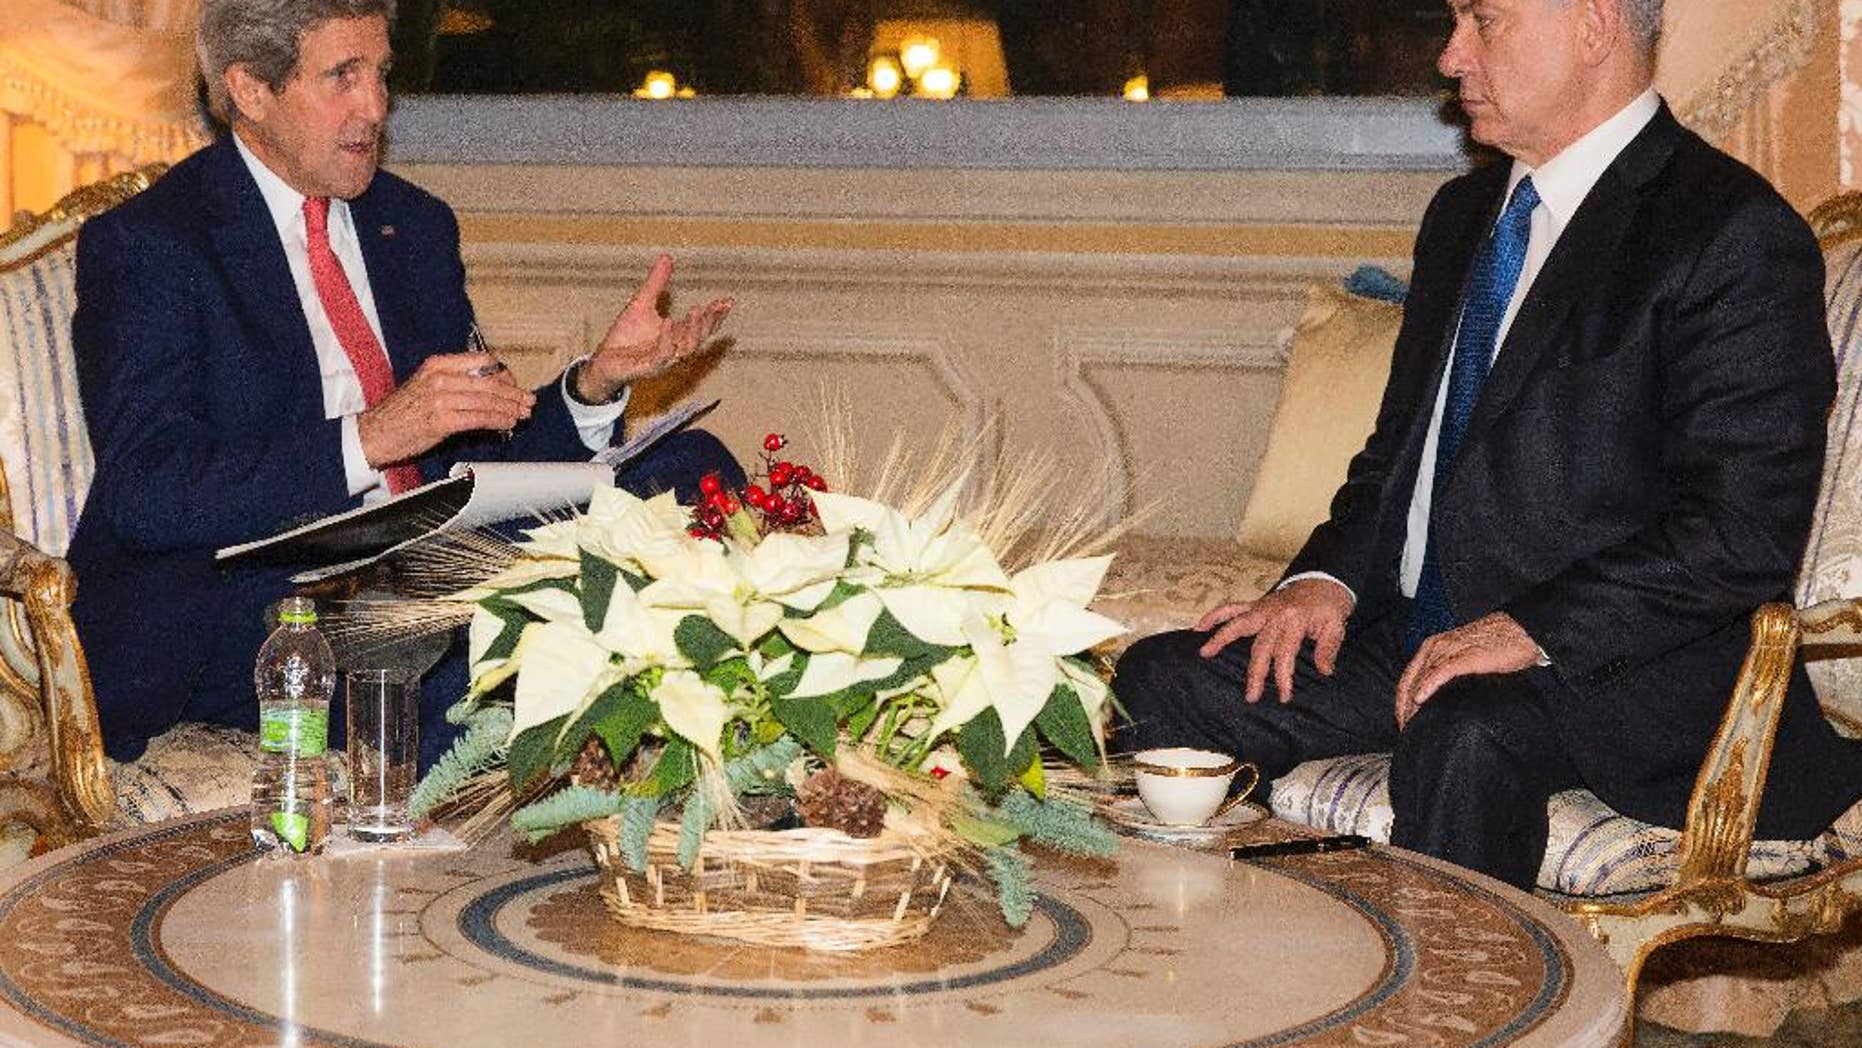 US Secretary of State, John Kerry, meets with Israel Prime Minister Benjamin Netanyahu at Villa Taverna, Rome, on Monday, Dec. 15, 2014. Kerry and Netanyahu met as the U.S. and Israel developed their responses to a draft U.N. resolution that would set a two-year timetable for an Israeli-Palestinian peace accord. (AP Photo/Evan Vucci, Pool)